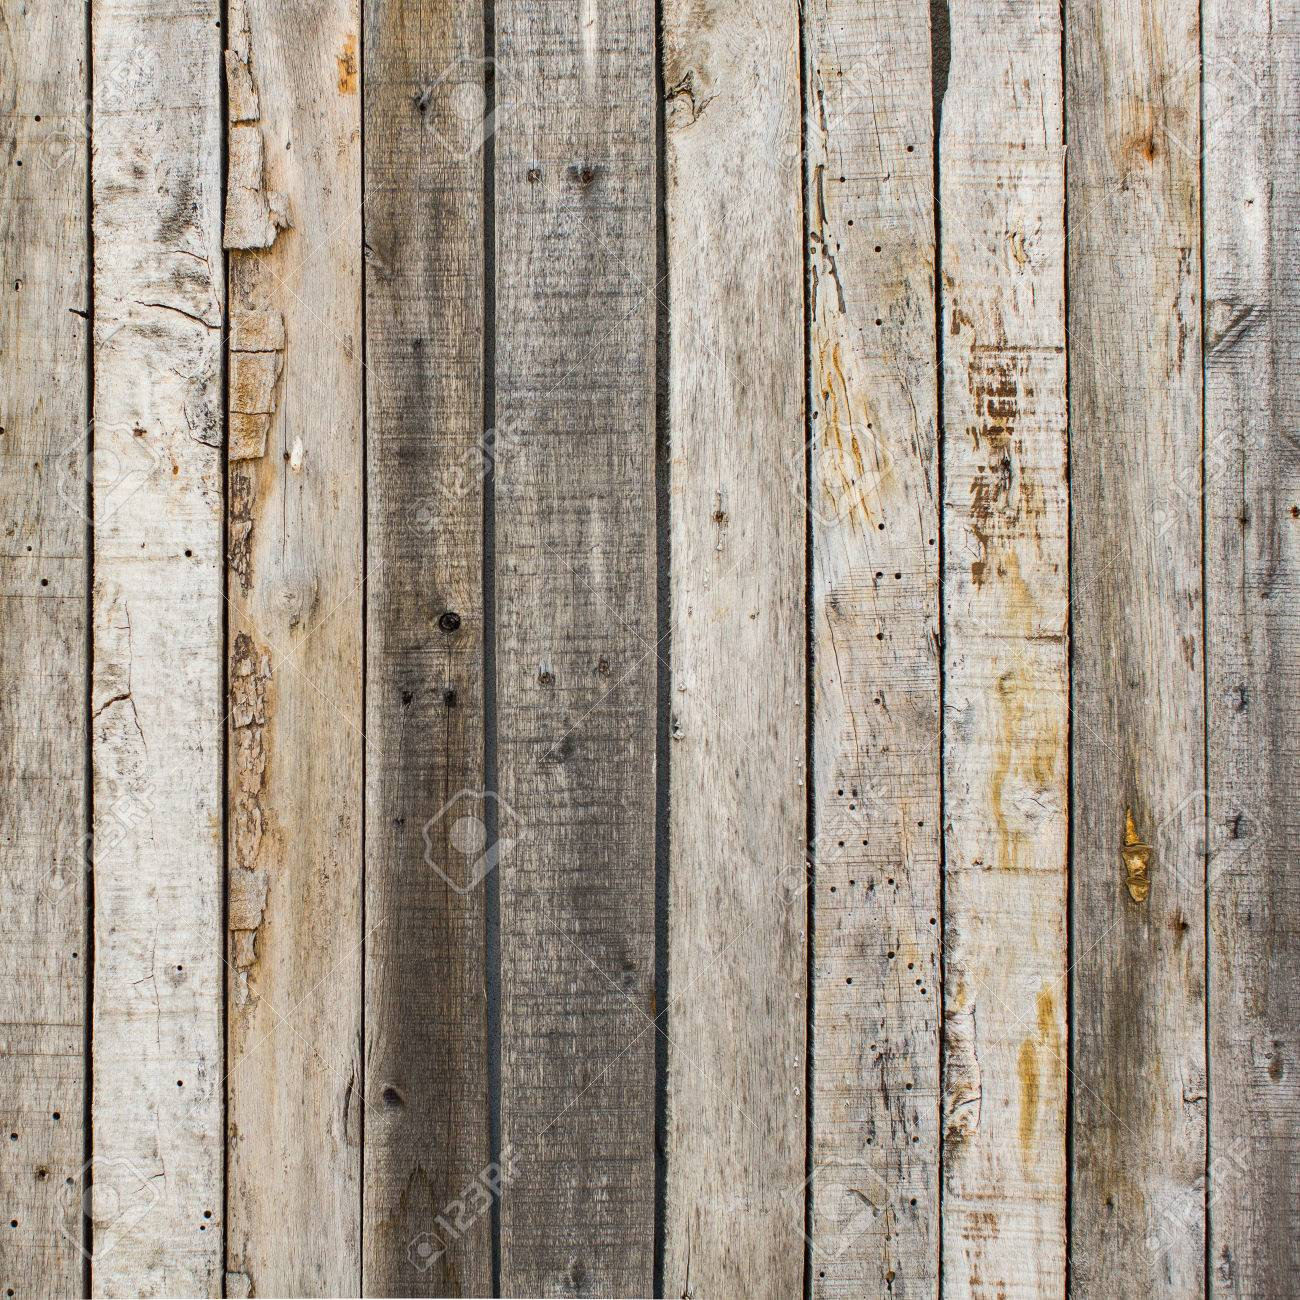 Rustic Weathered Barn Wood Background With Knots And Nail Holes Stock Photo    38096121